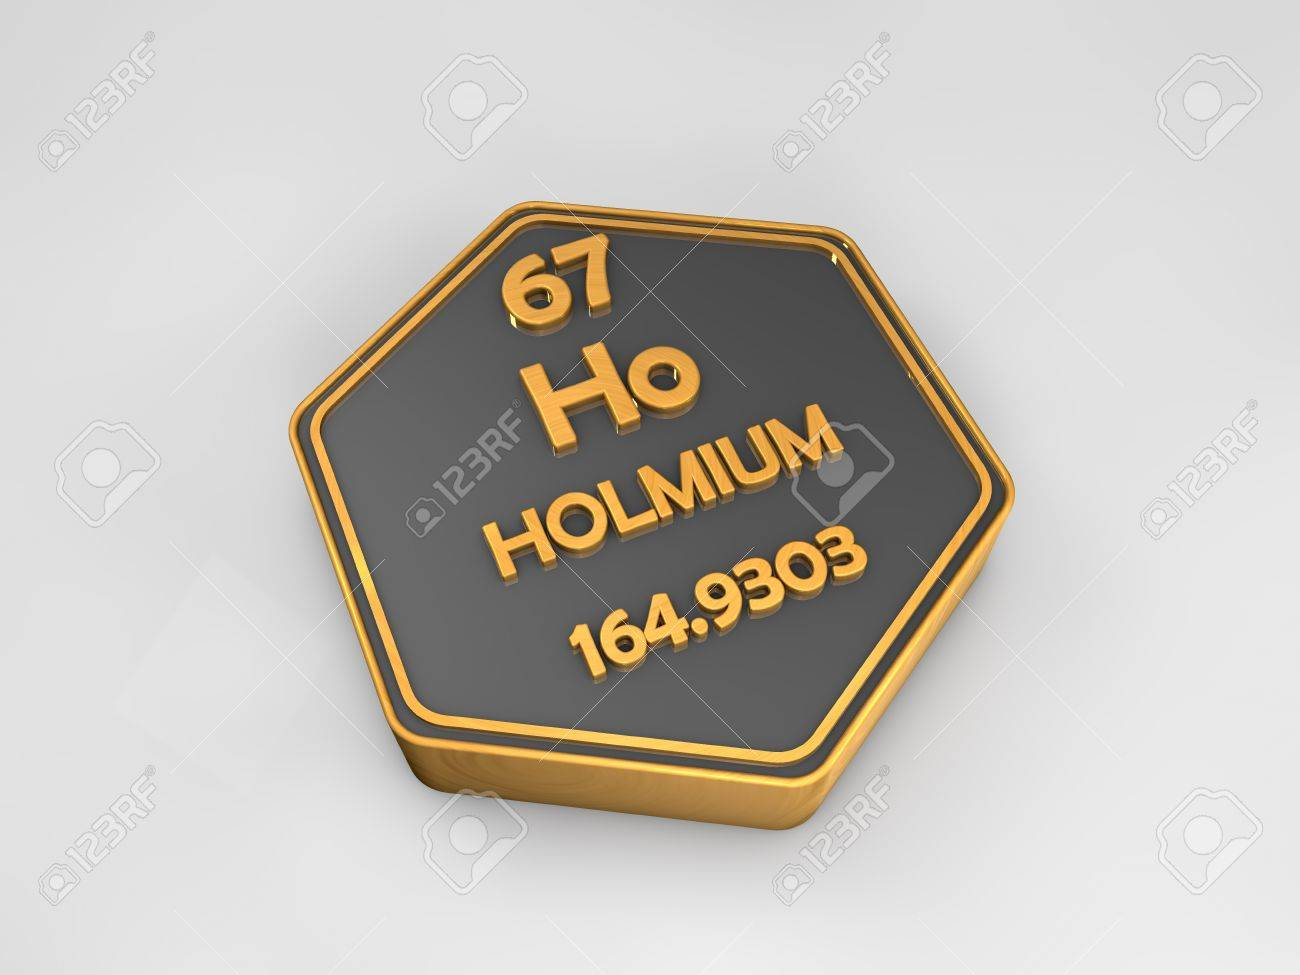 Sheffield periodic table images periodic table images ho element periodic table choice image periodic table images holmium periodic table images periodic table images gamestrikefo Gallery